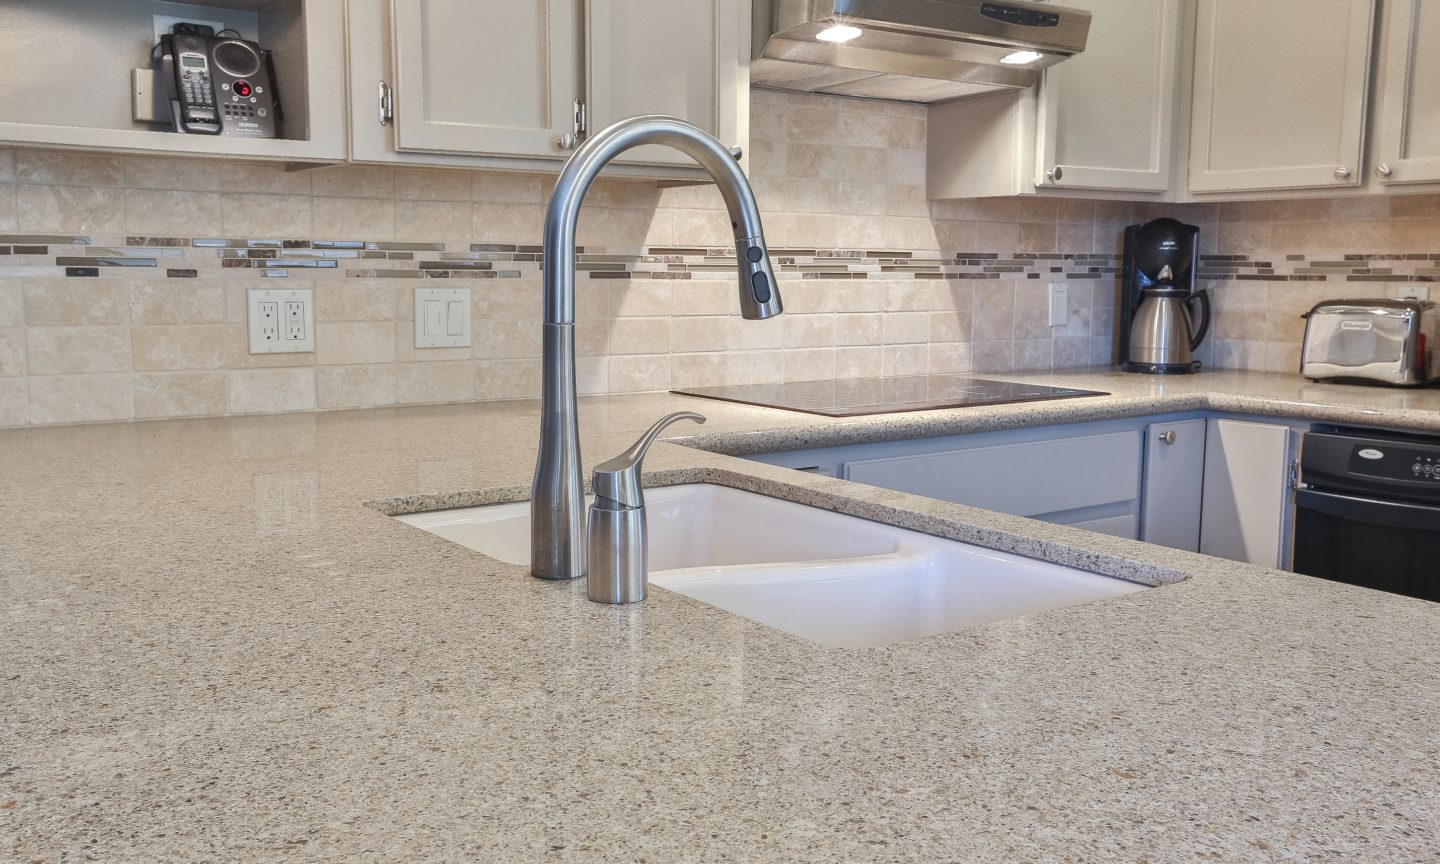 Advantages Of Using Glass Tile Backsplash Celebrating National Backsplash Month Part 3 Kitchen